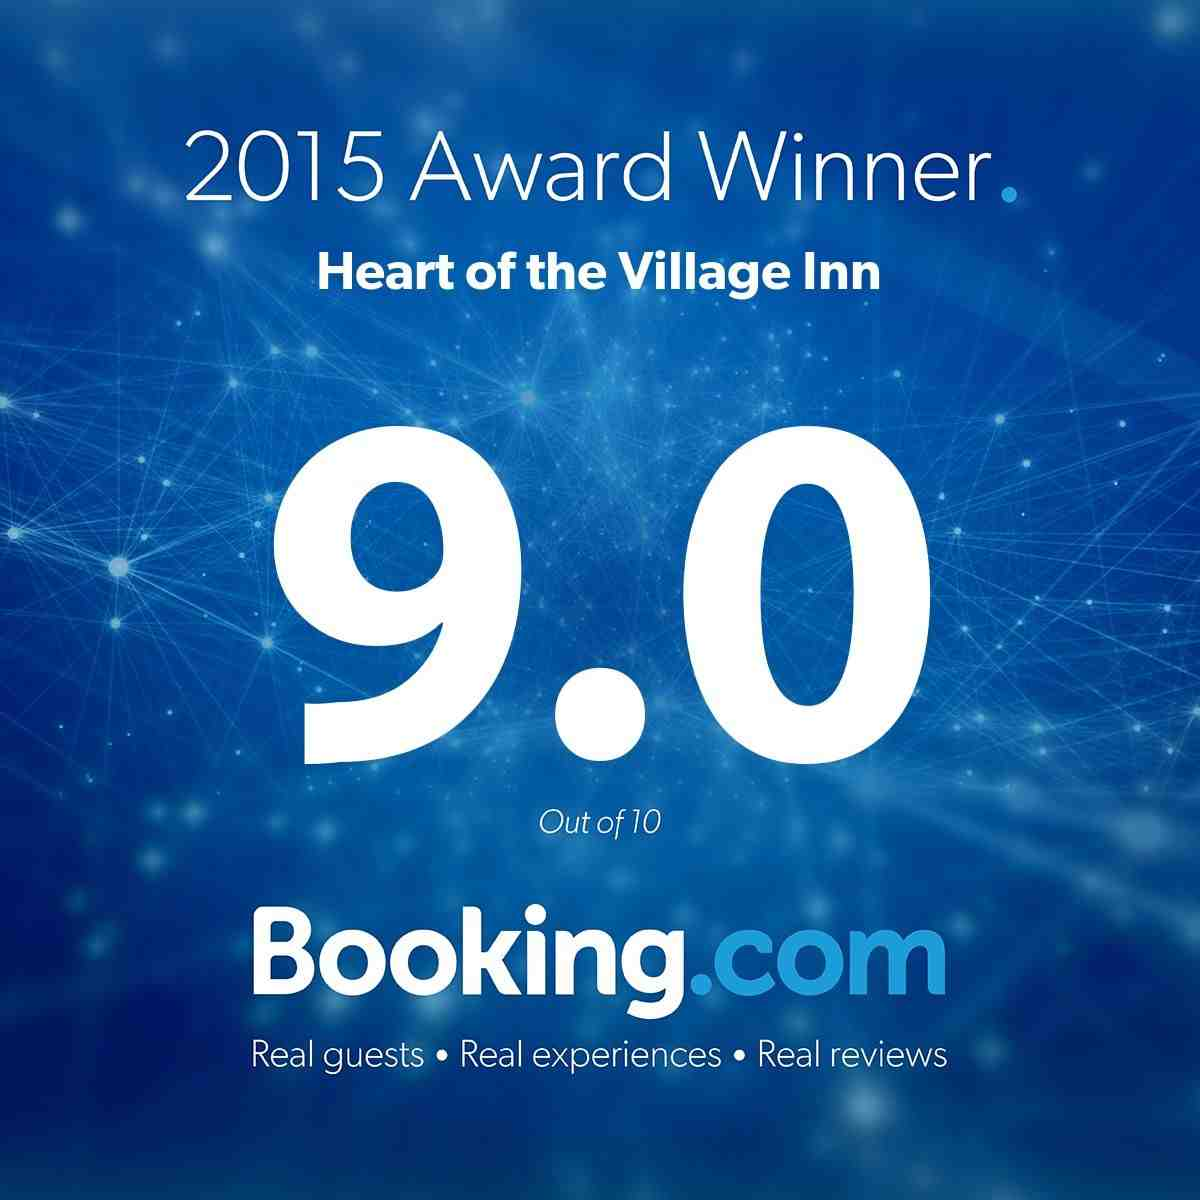 2015 Booking.com Award Winner